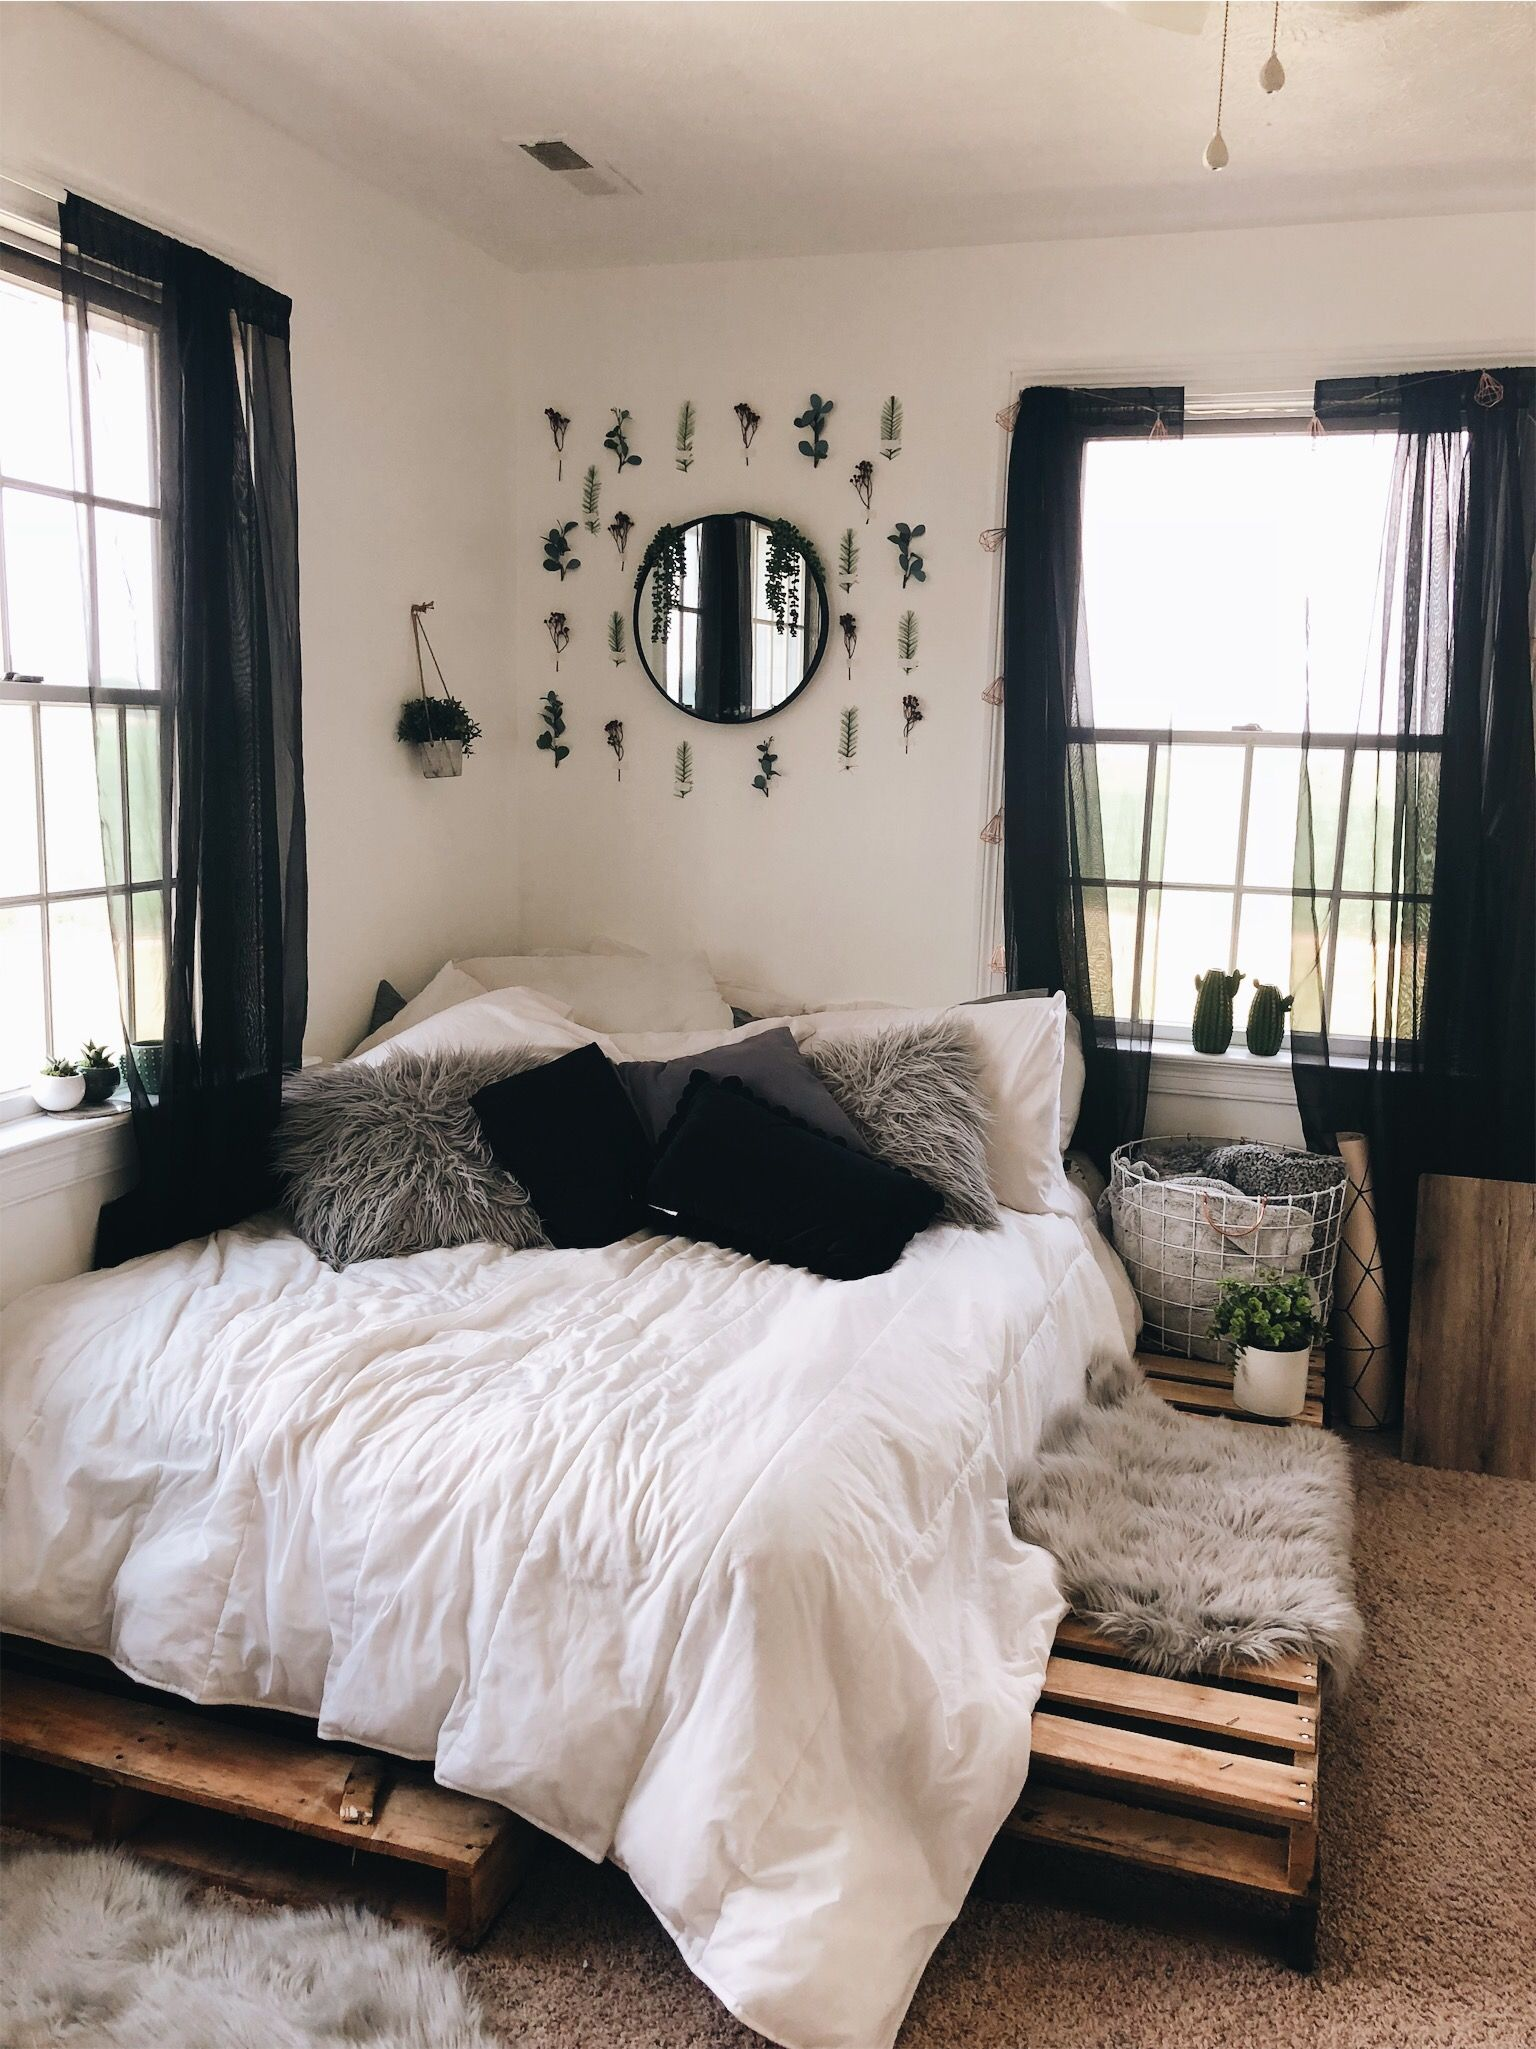 Vsco Maddiemcg77 Remodel Bedroom Small Room Bedroom Aesthetic Bedroom